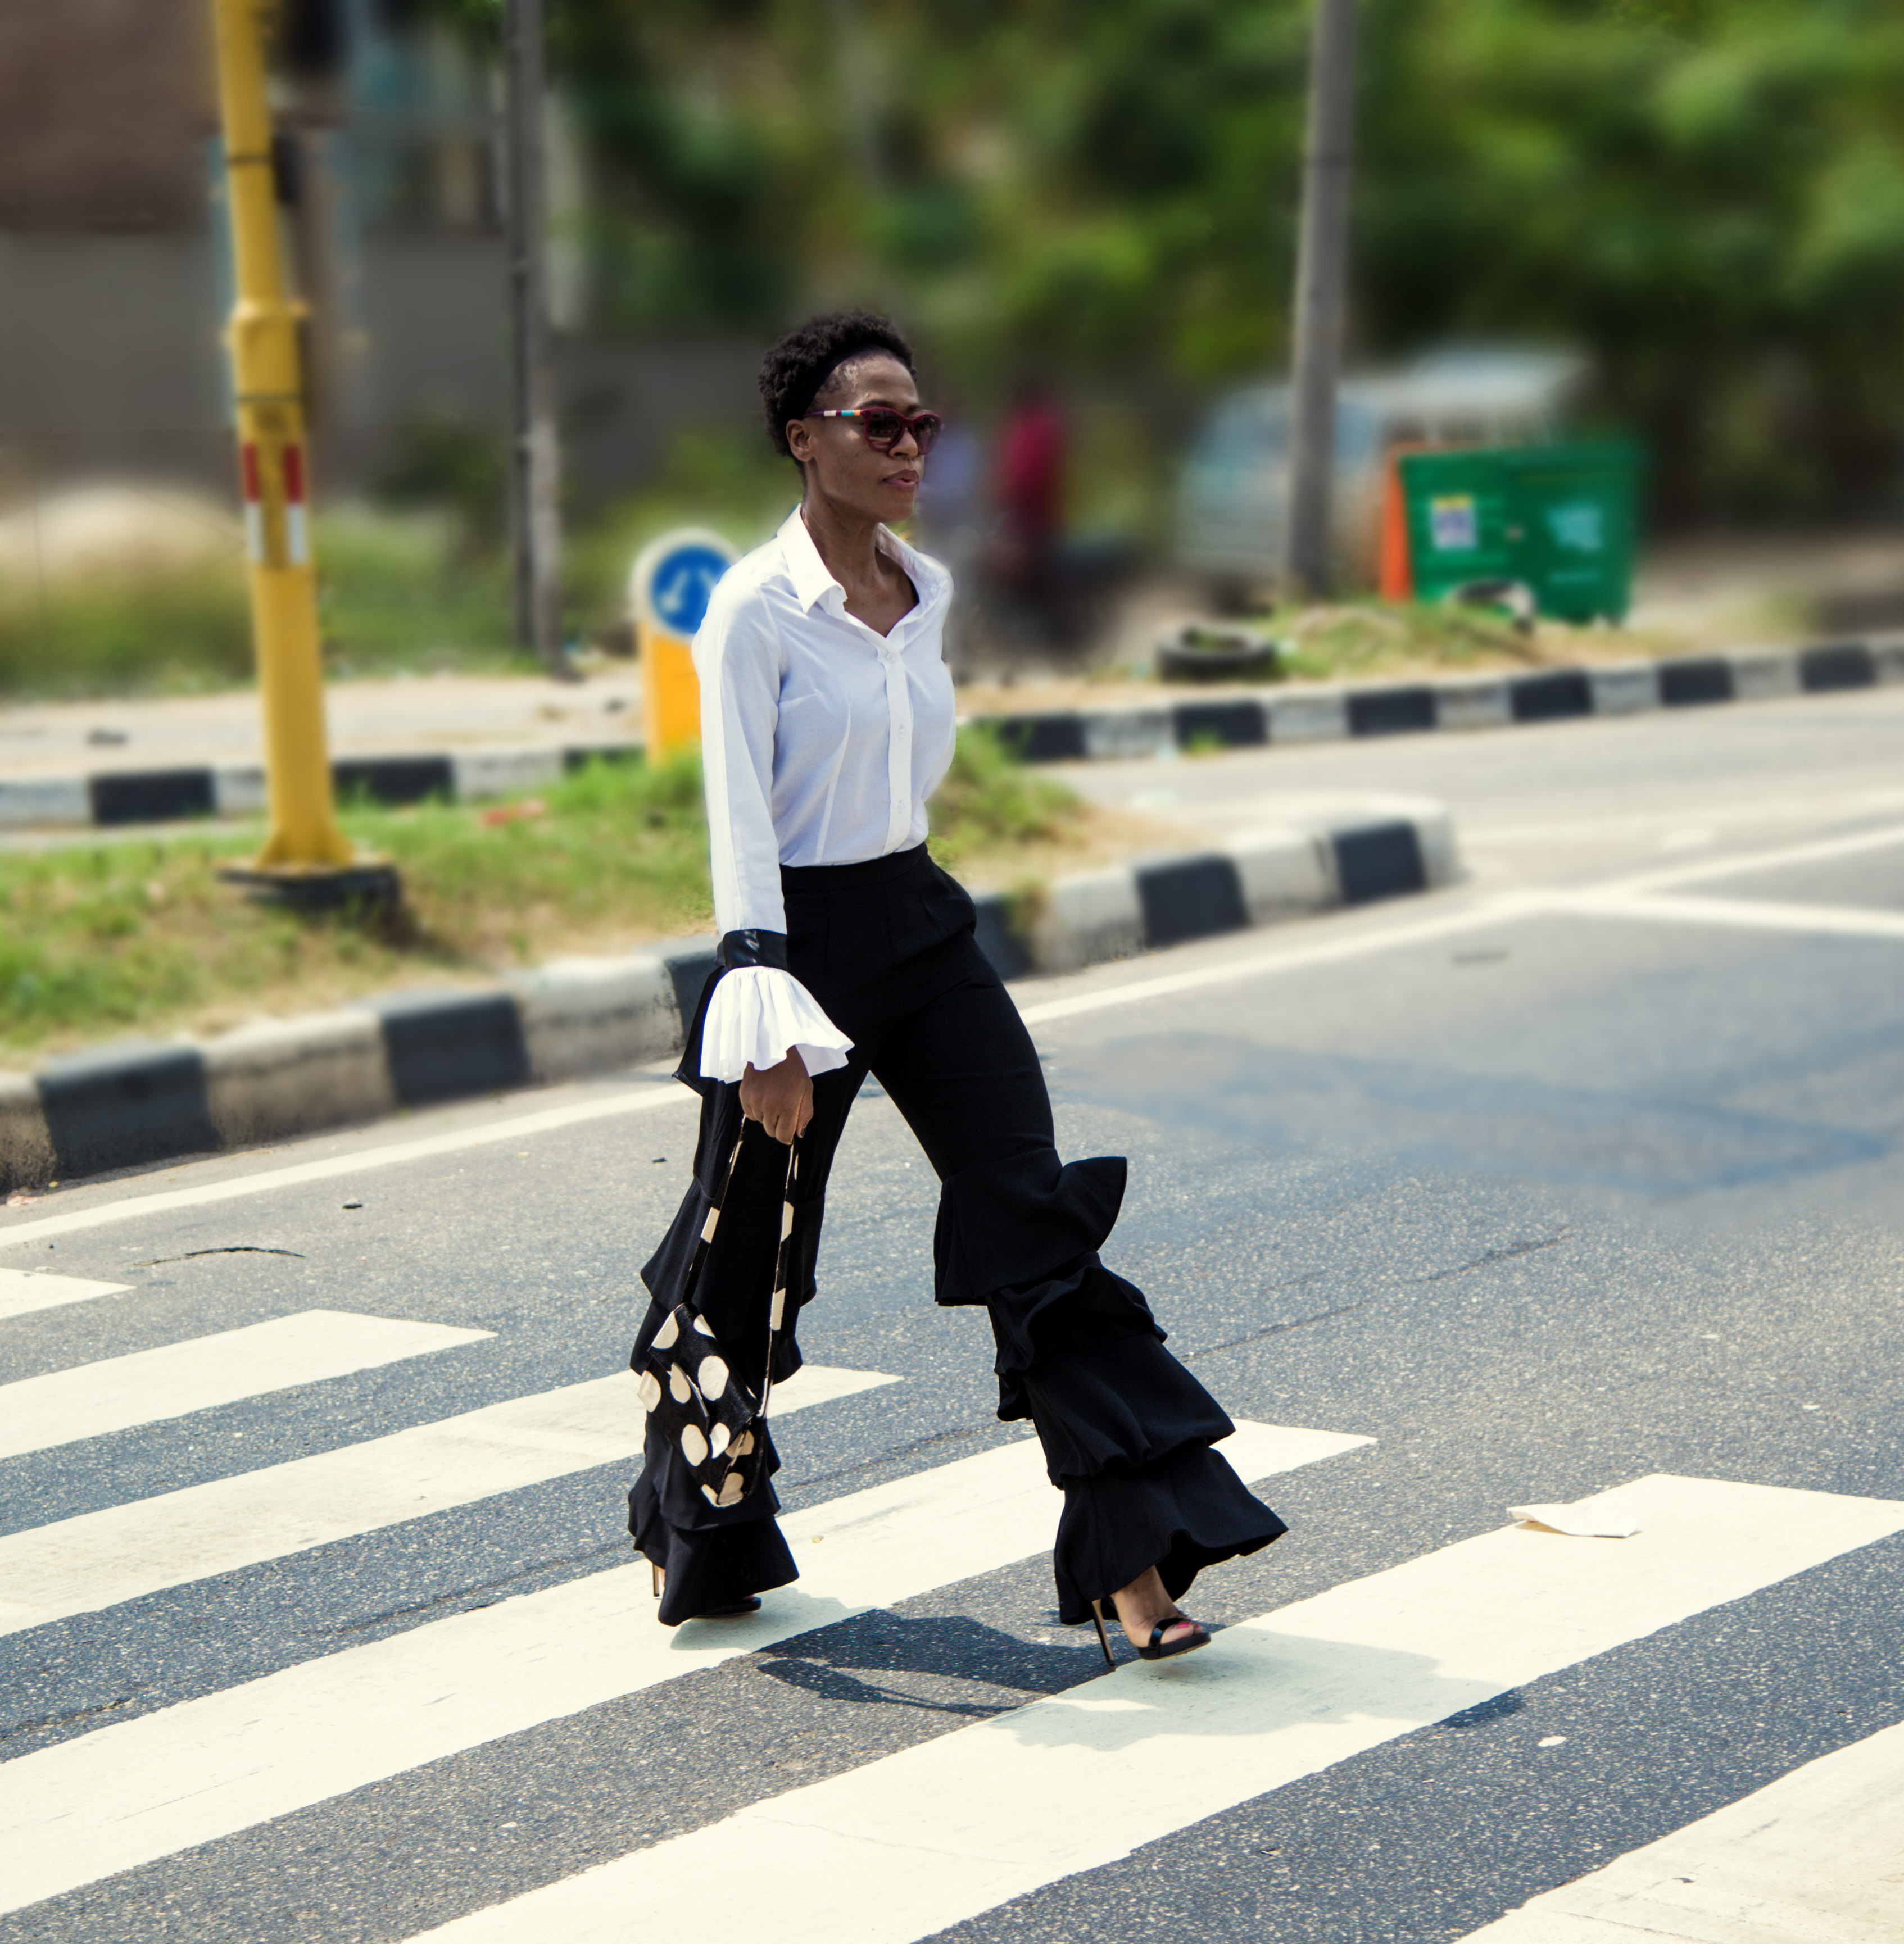 Crossing the Zebra Crossing into an Awesome Life